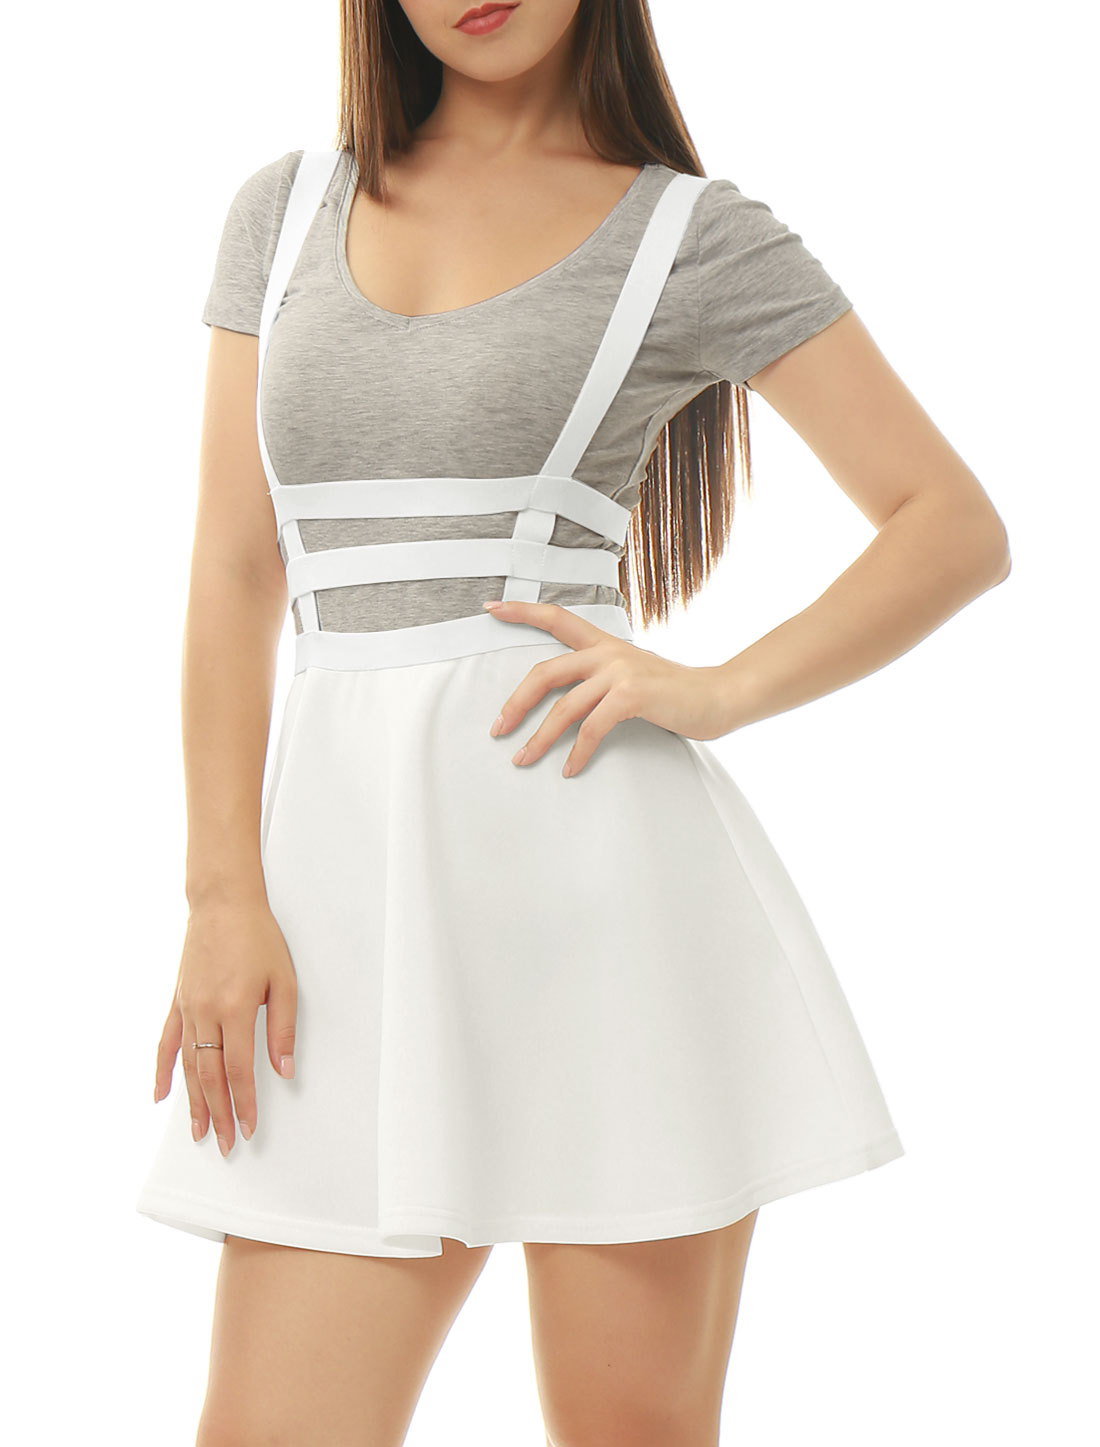 Allegra K Women Elastic Waist Cut Out A Line Suspender Skirt White XS